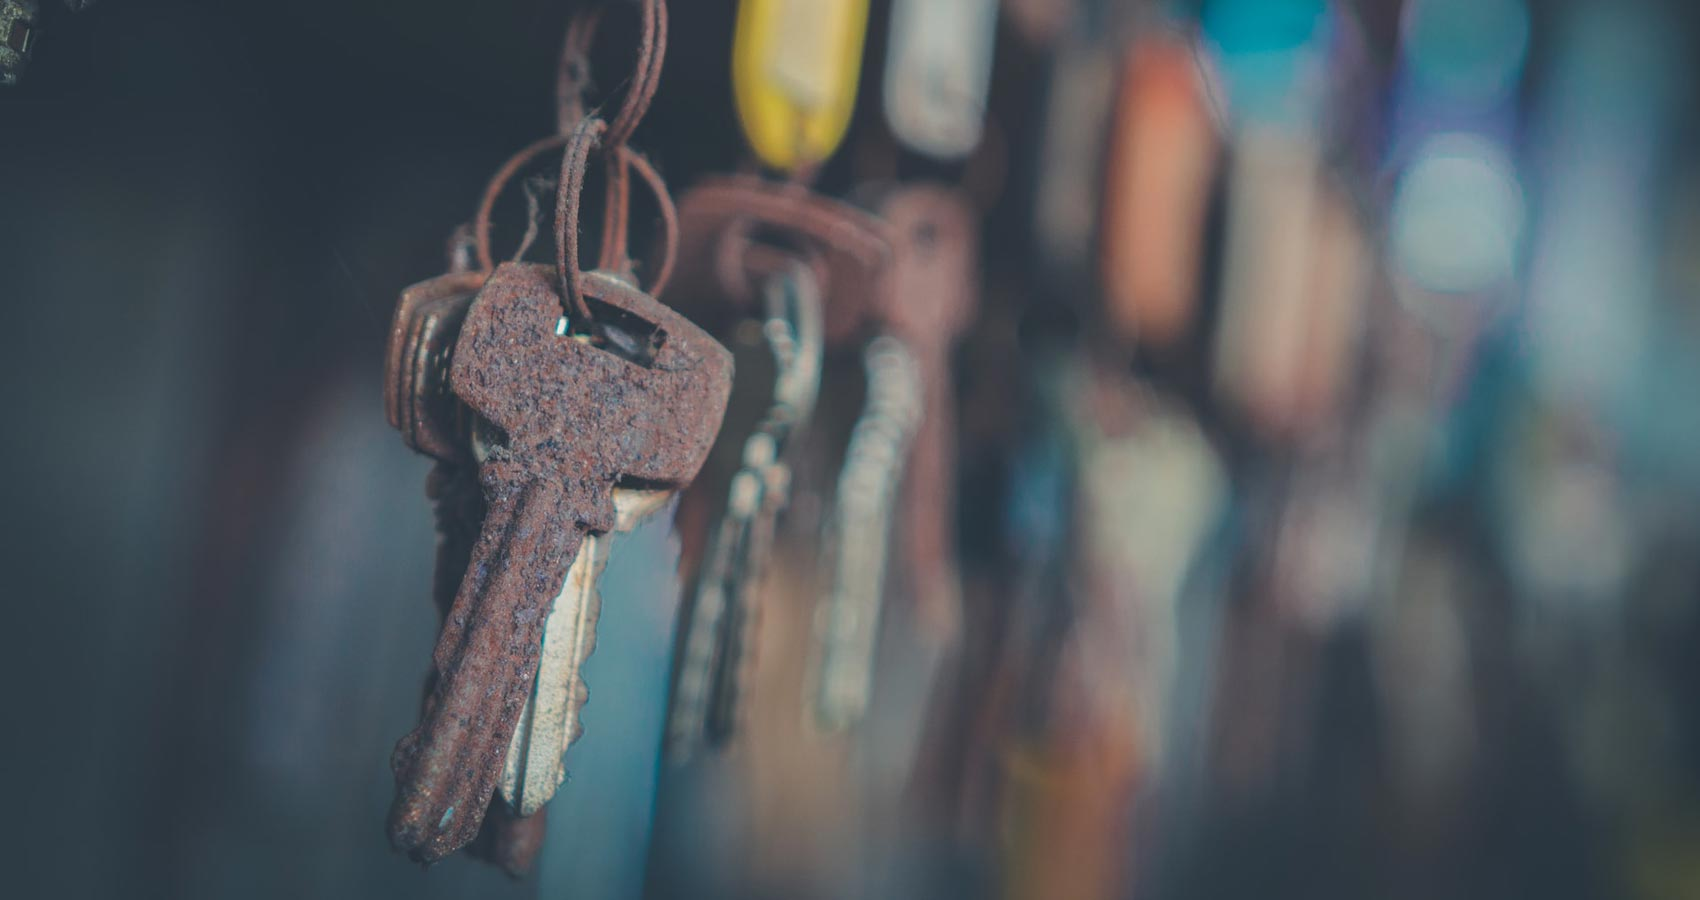 Rusty Keys, poetry by Olaitan Humble at Spillwords.com